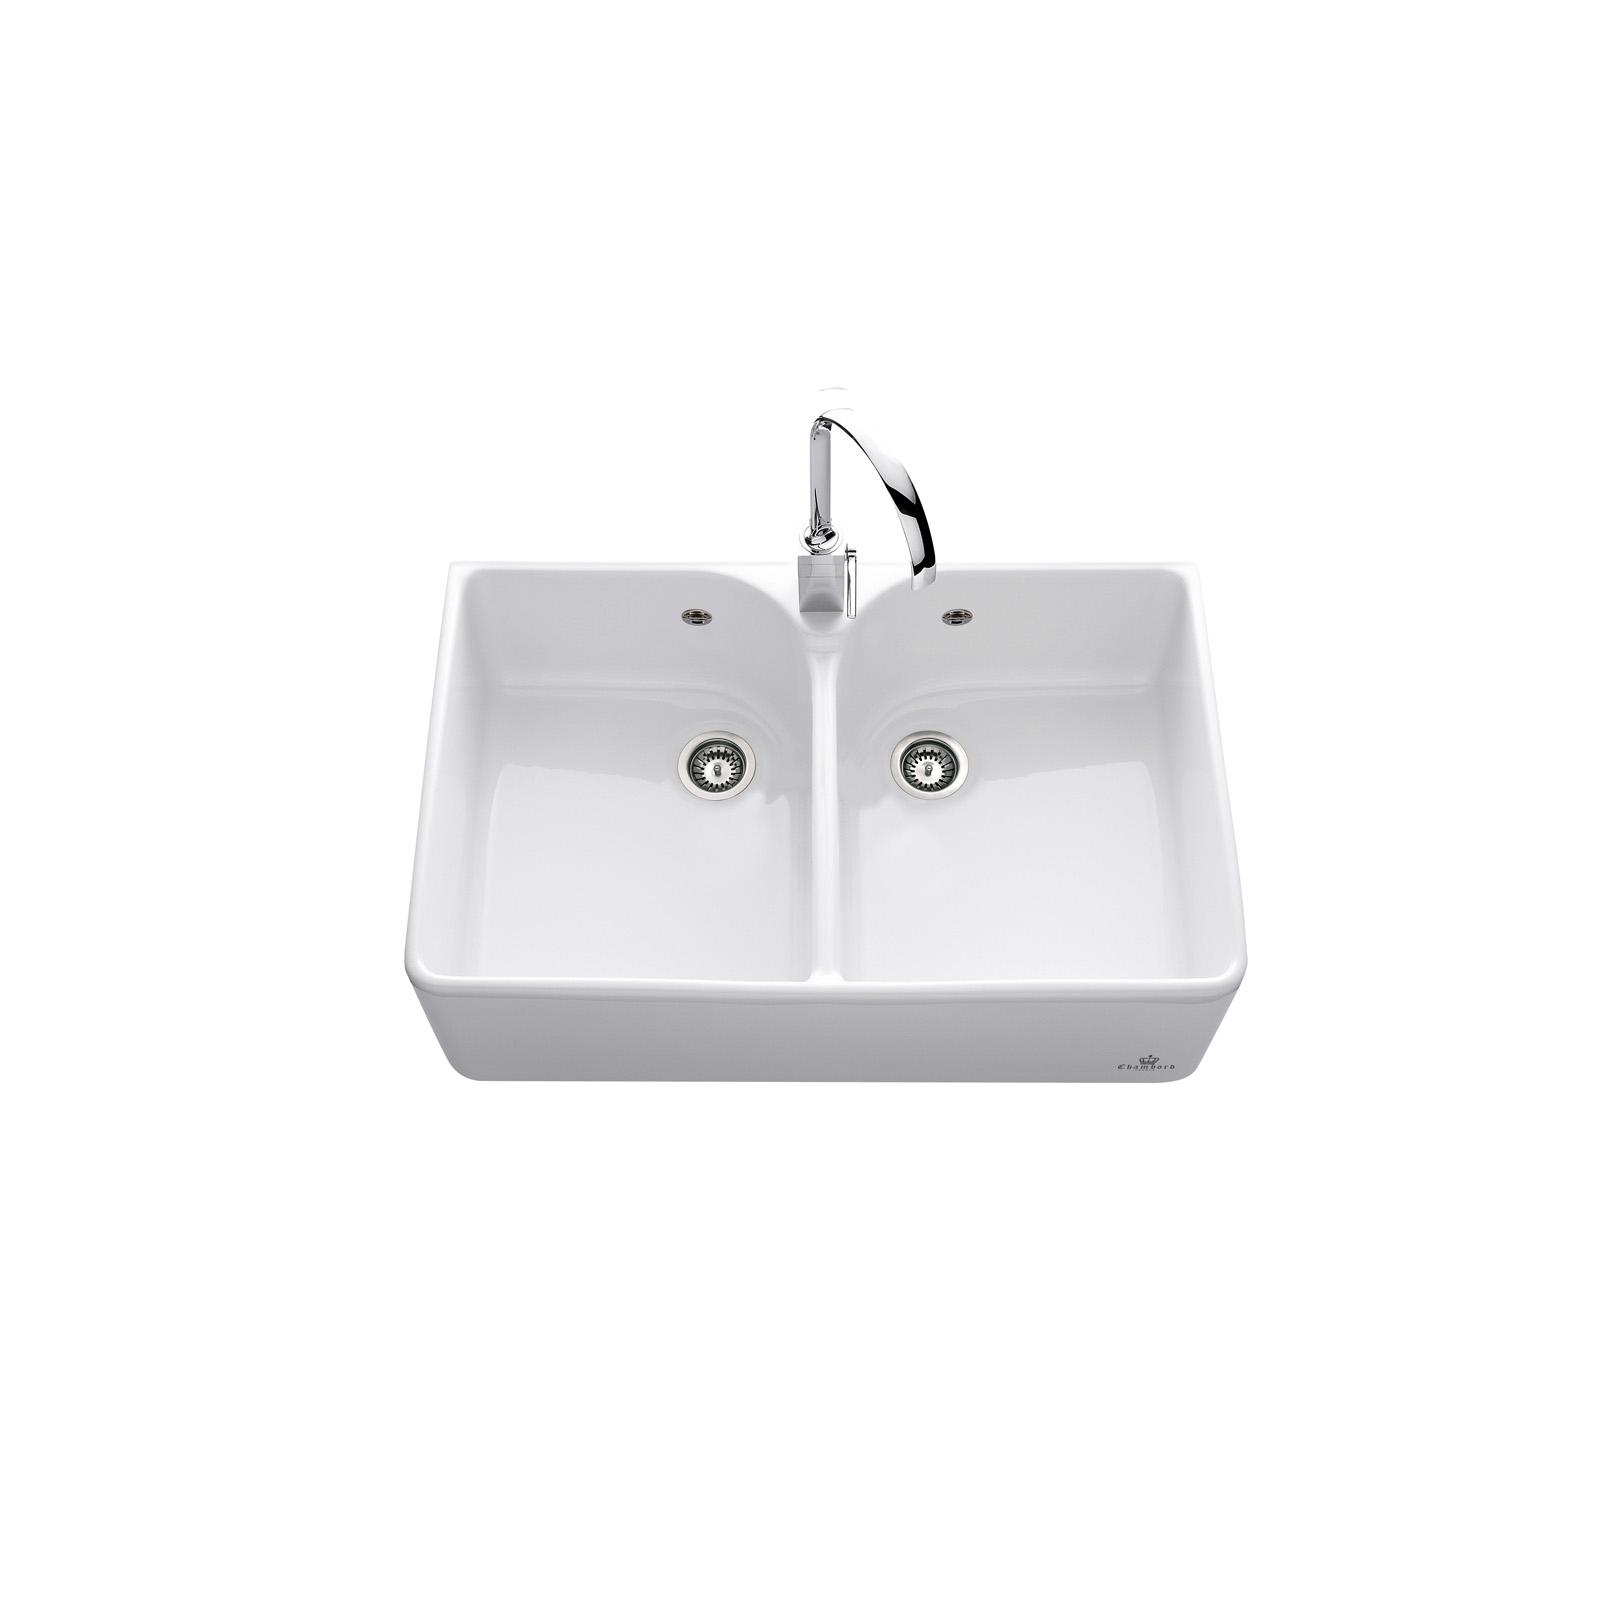 High-quality sink Clotaire II - two bowls, ceramic